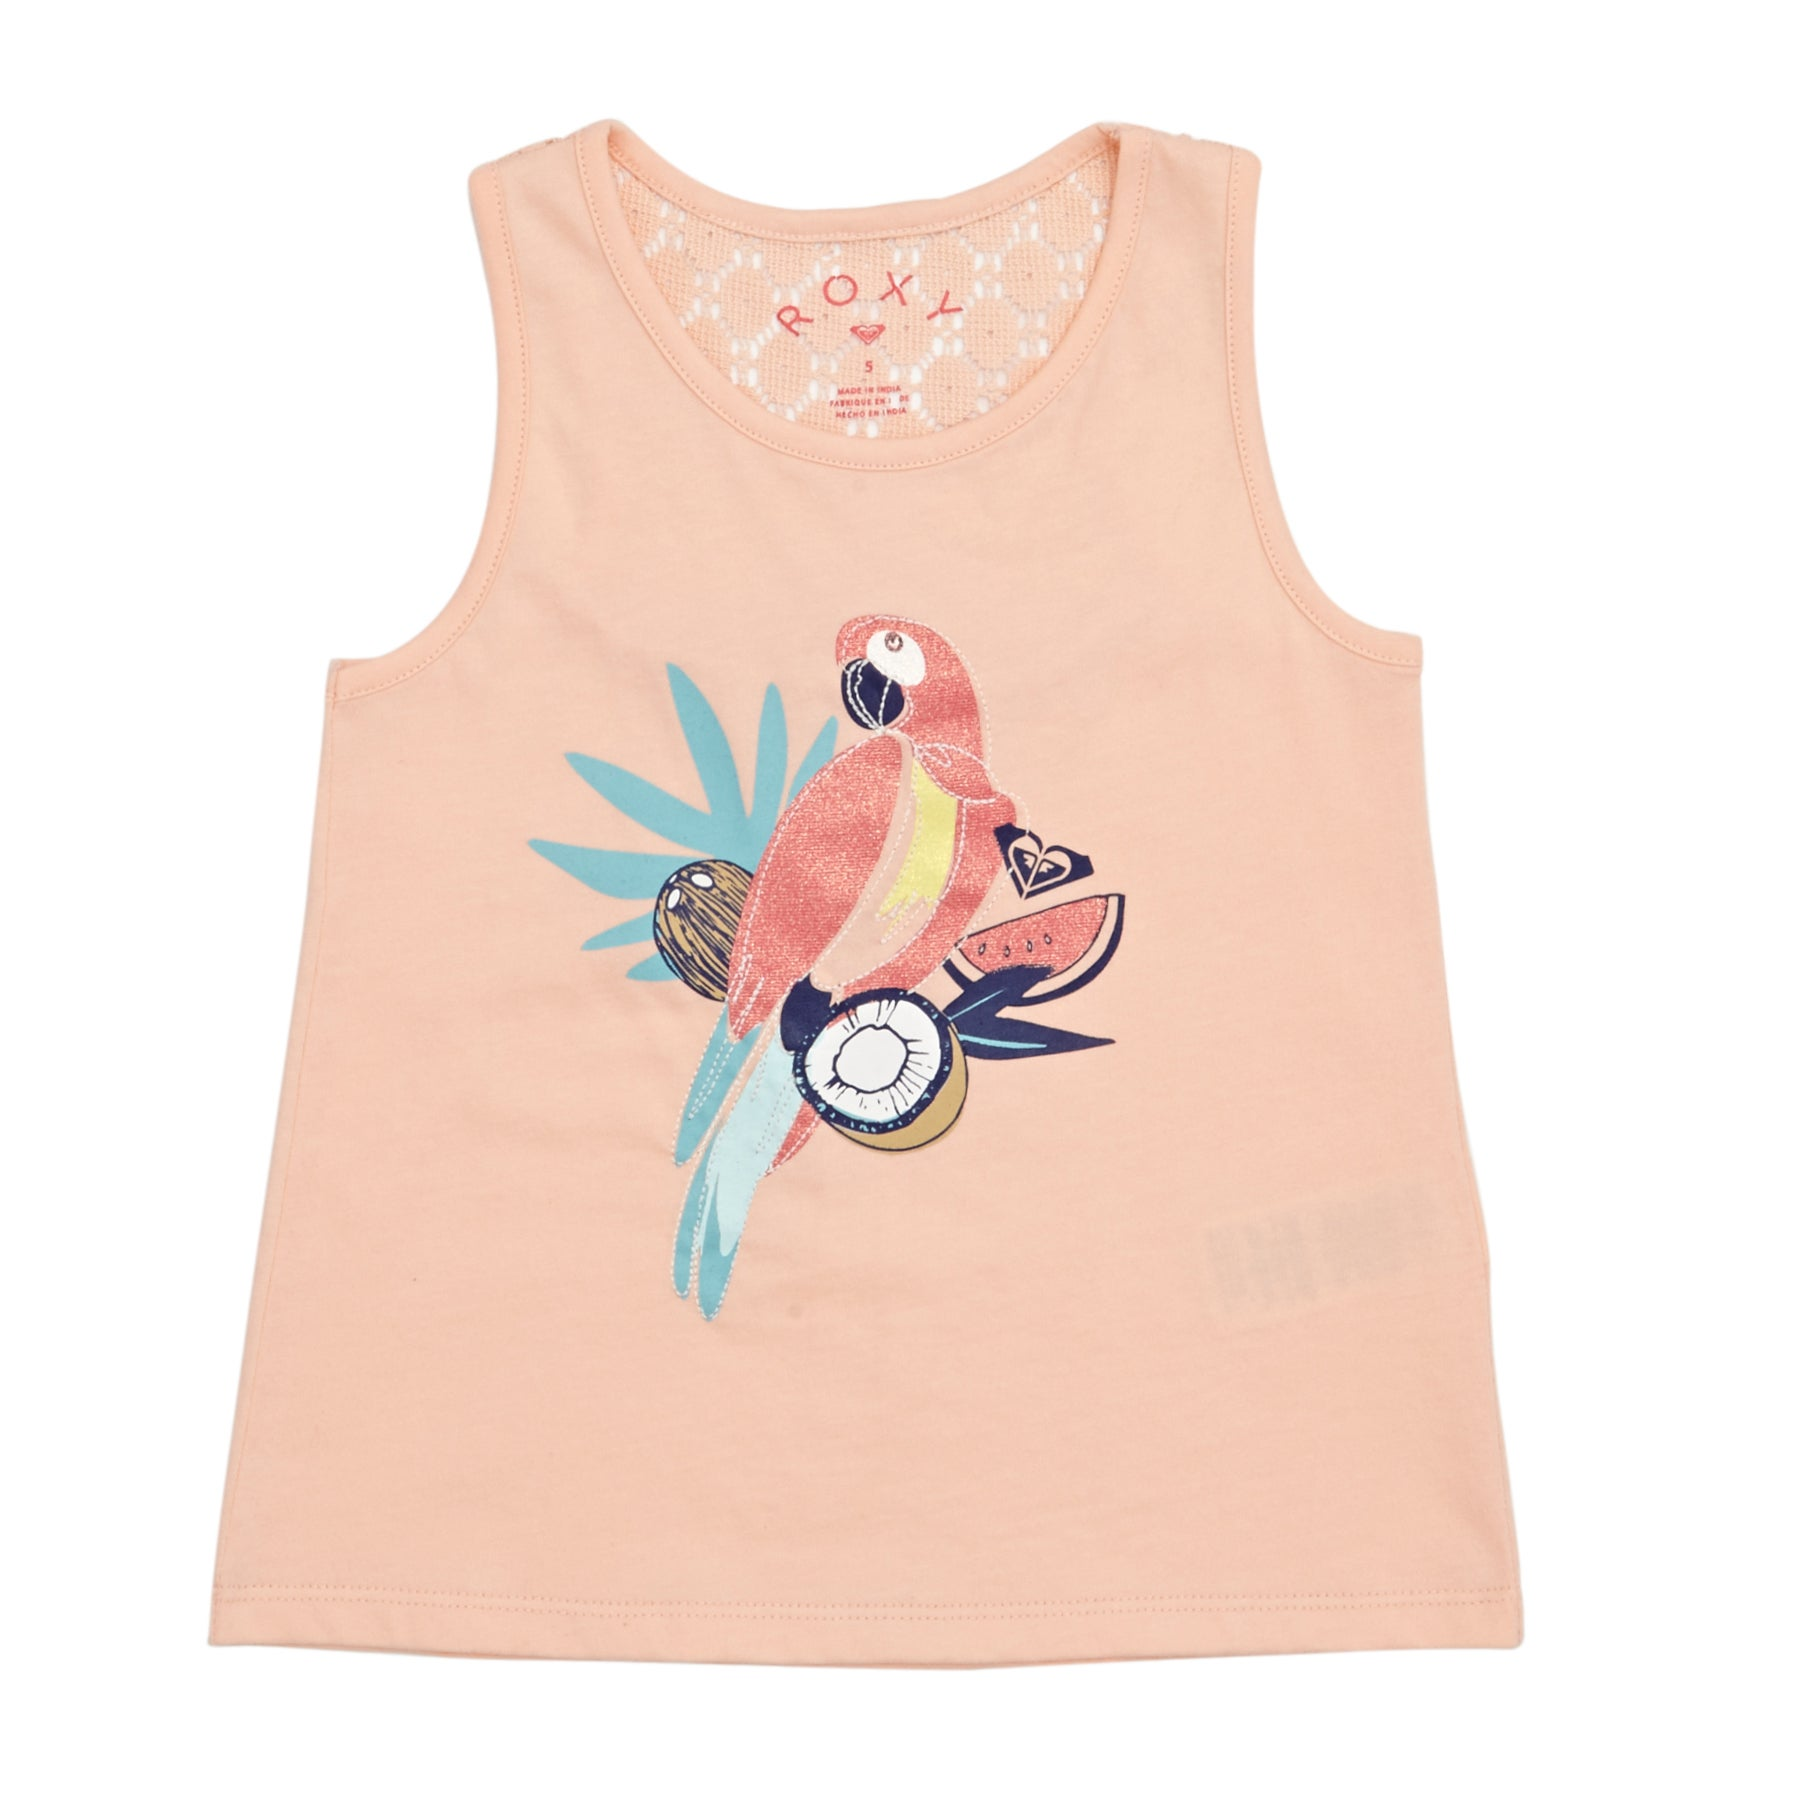 Roxy Peaceful Light The Parrot Girls Tank Vest - Tropical Peach